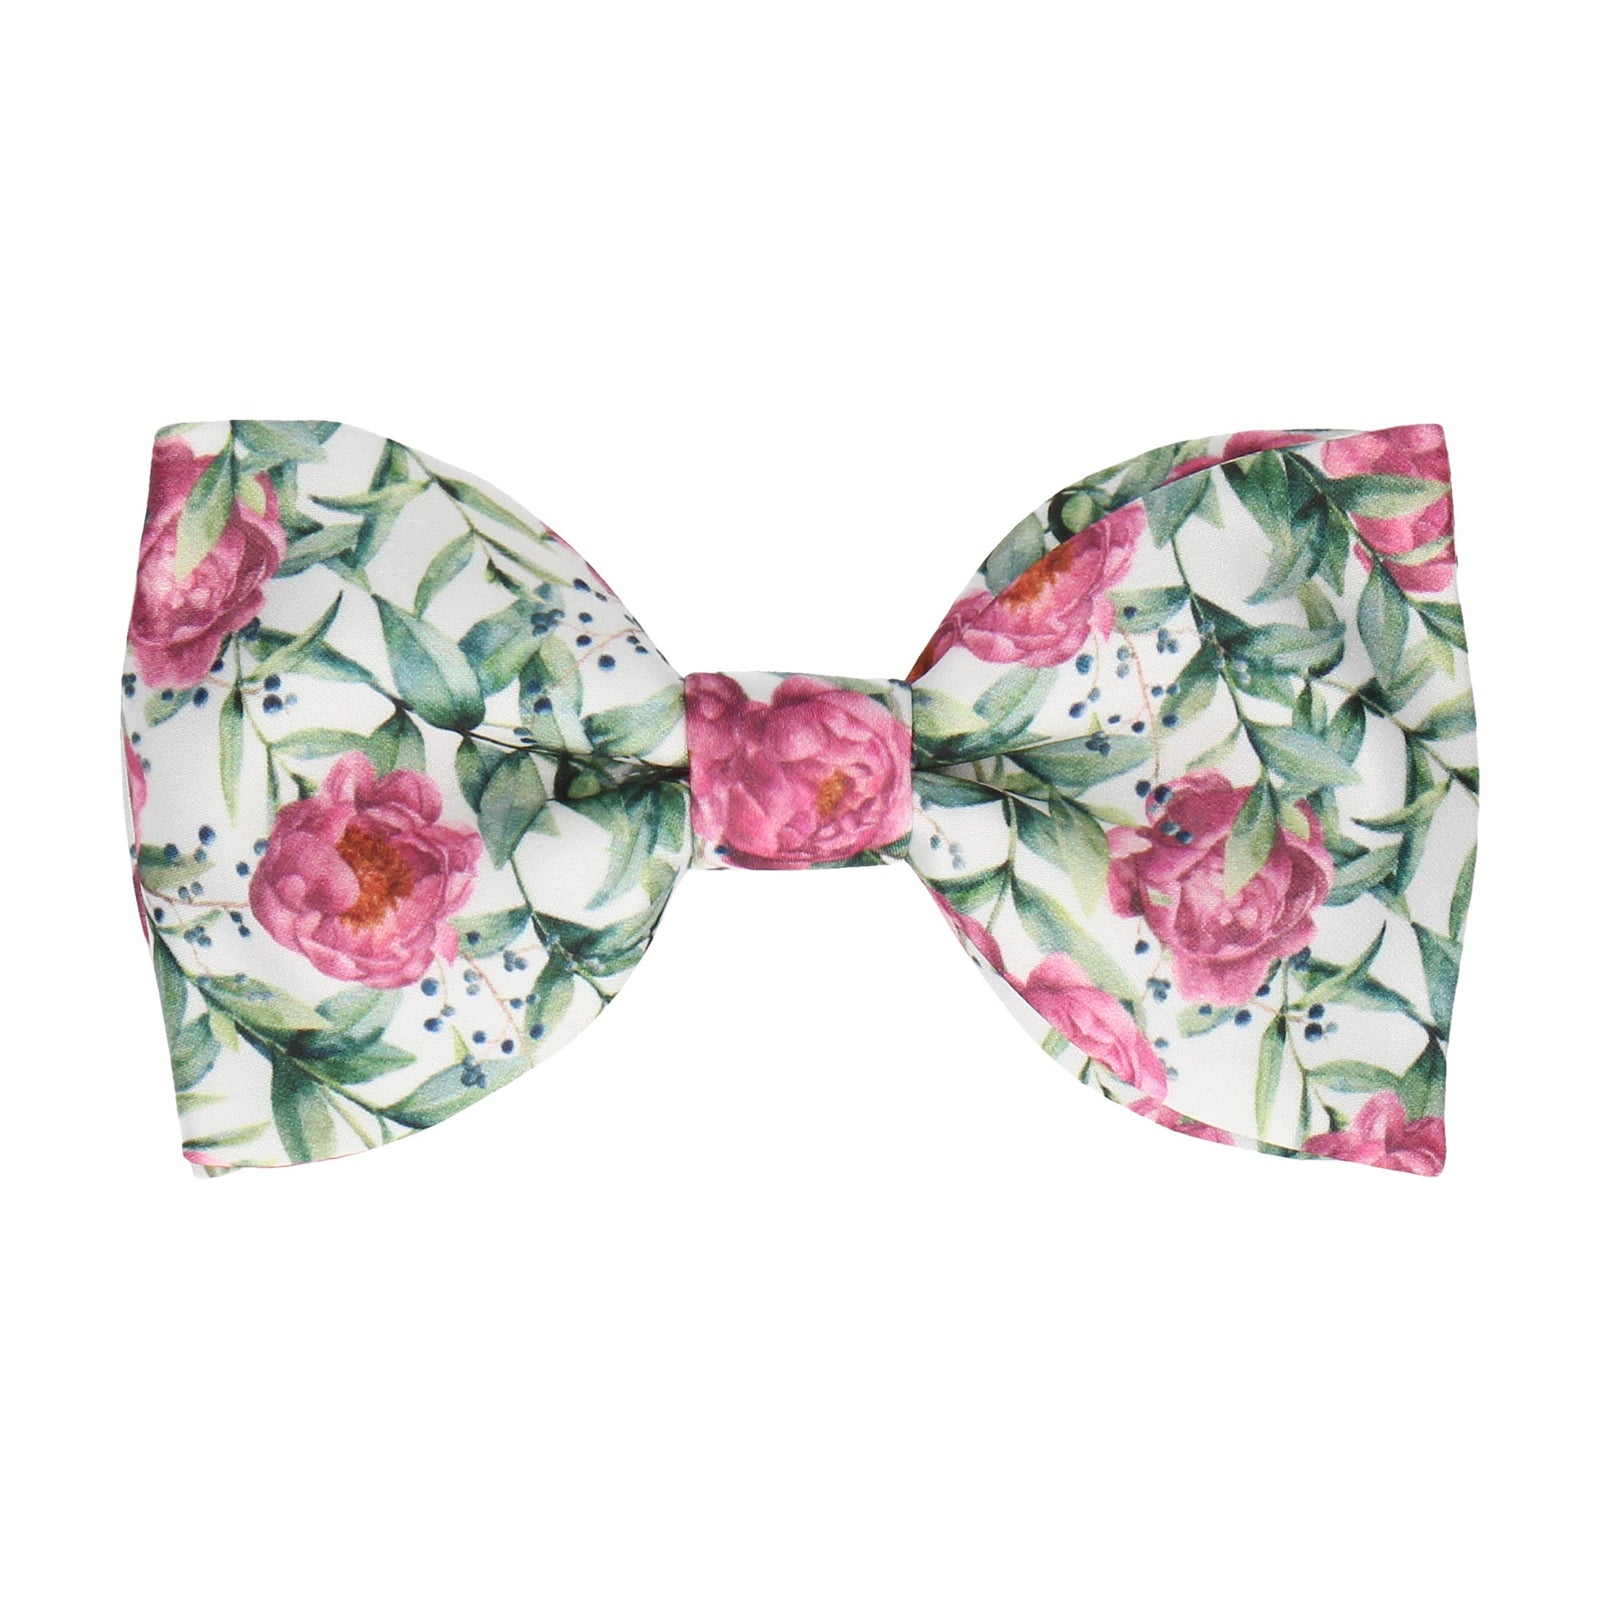 Pink Peony, Eucalyptus and Berries Bow Tie